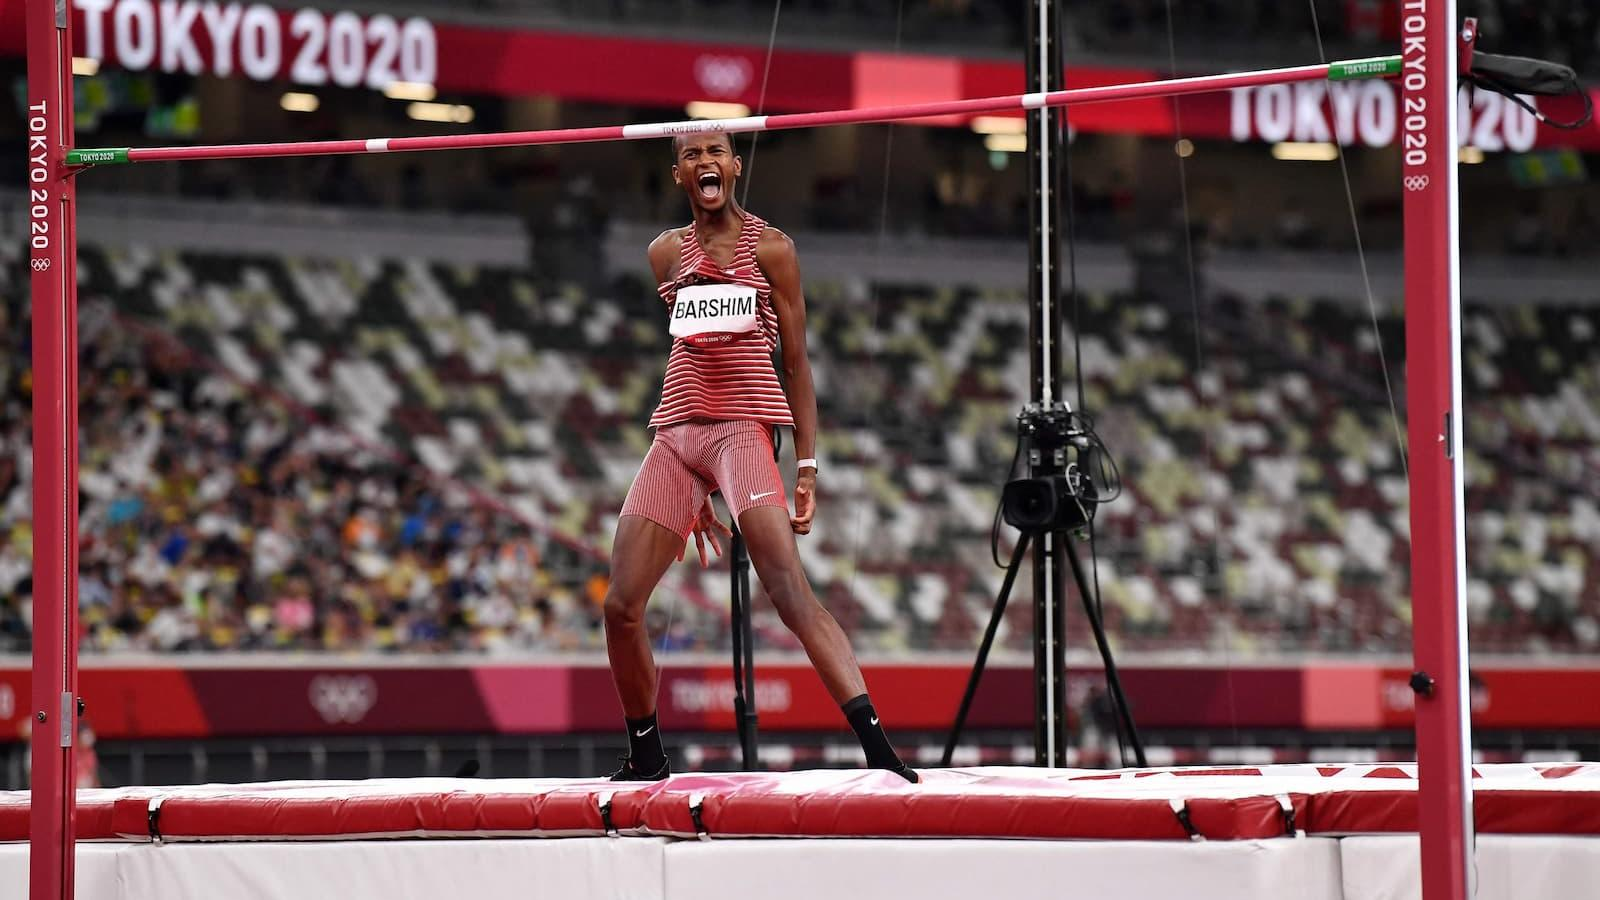 WATCH: Barshim bags Qatar's second gold as world champion soars high in Tokyo